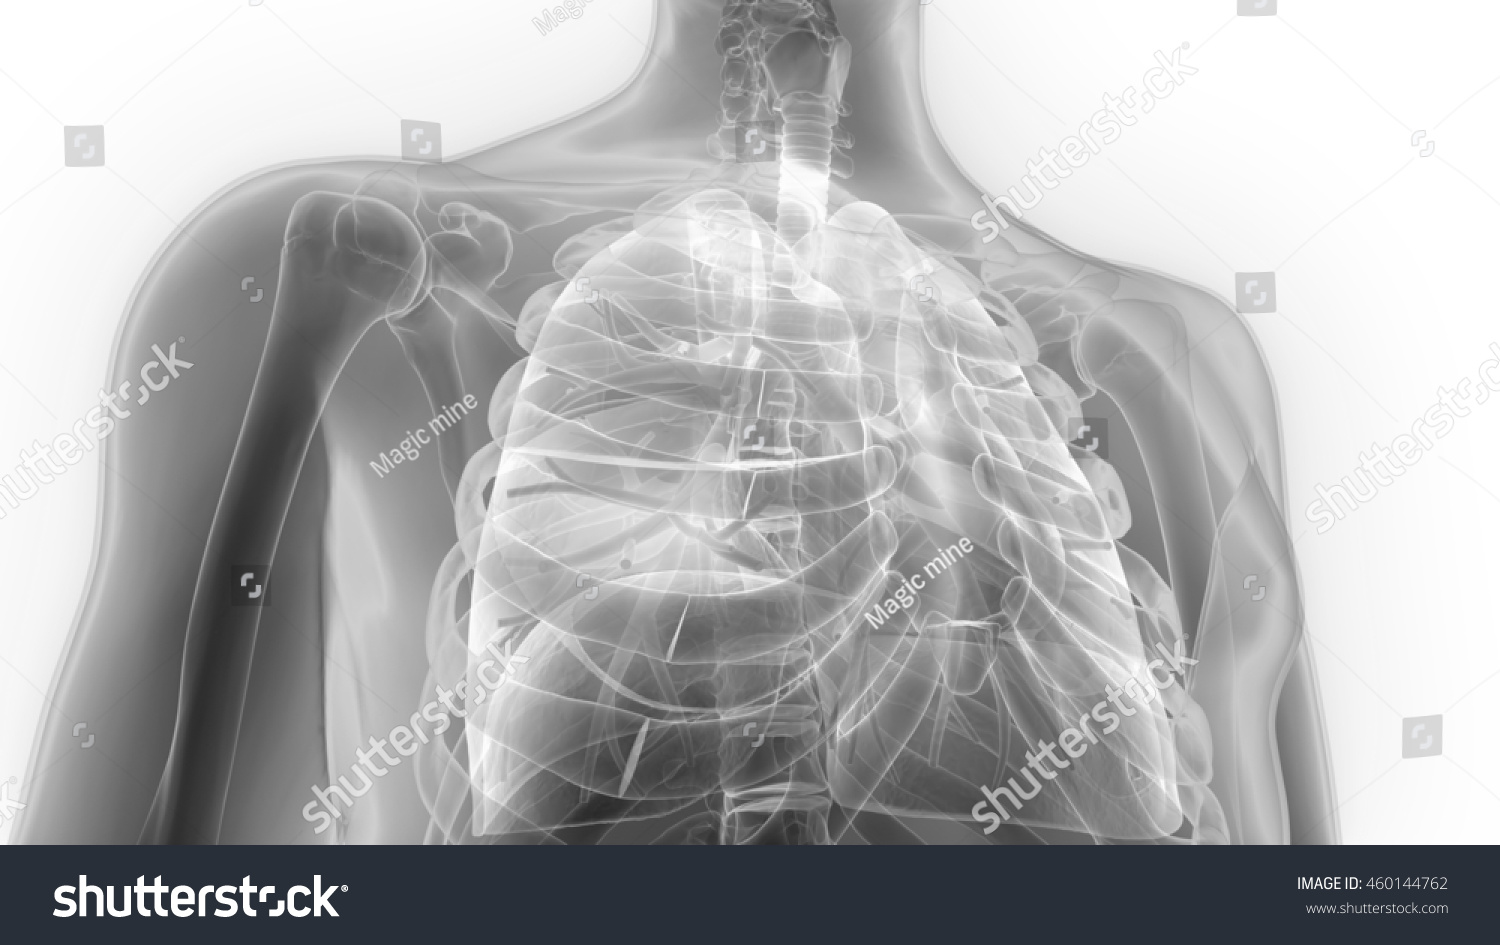 Outstanding Lateral Chest Radiograph Anatomy Vignette - Anatomy ...